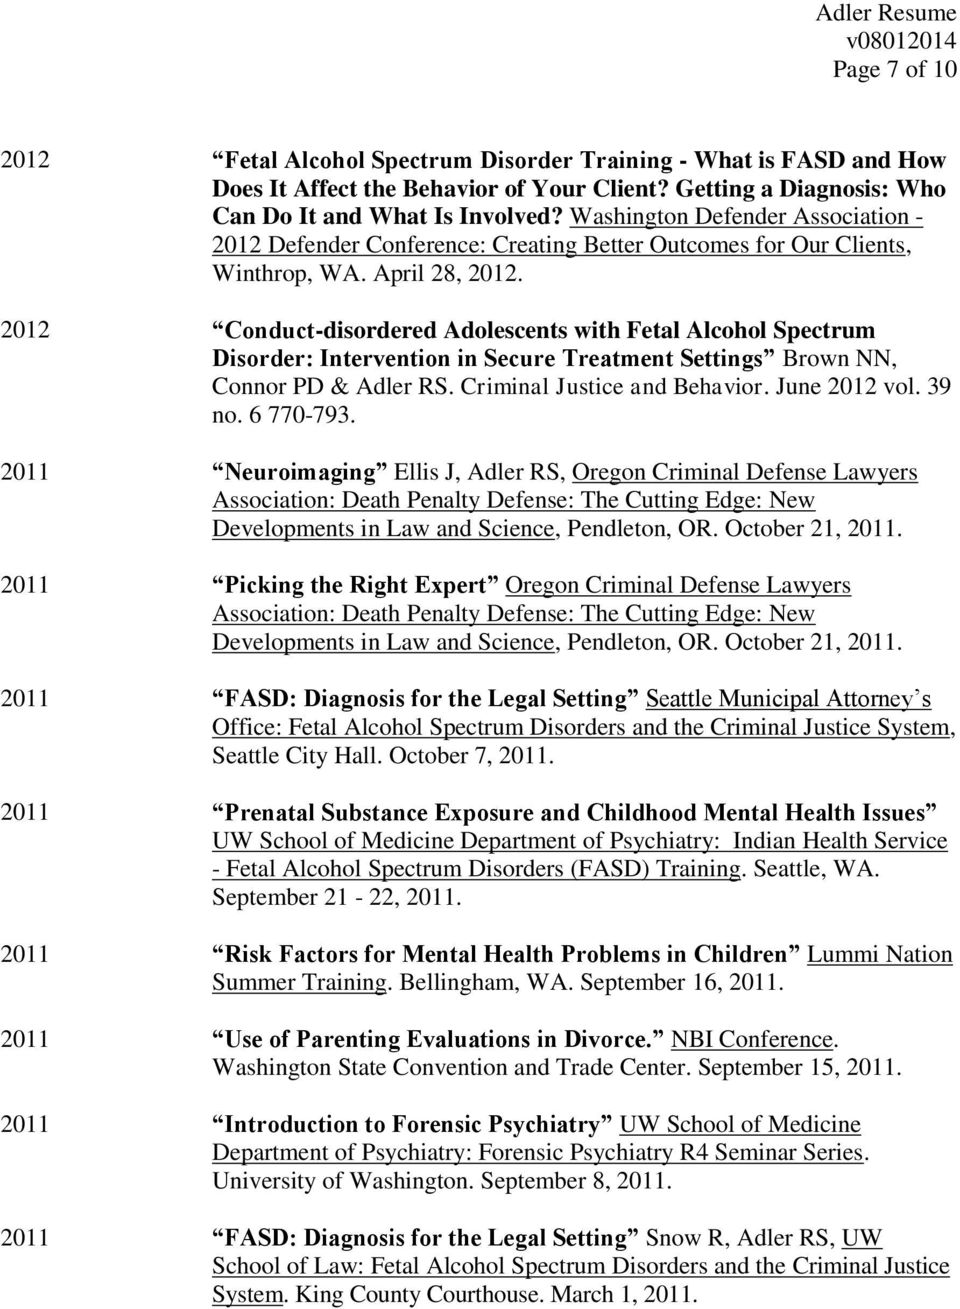 2012 Conduct-disordered Adolescents with Fetal Alcohol Spectrum Disorder: Intervention in Secure Treatment Settings Brown NN, Connor PD & Adler RS. Criminal Justice and Behavior. June 2012 vol. 39 no.